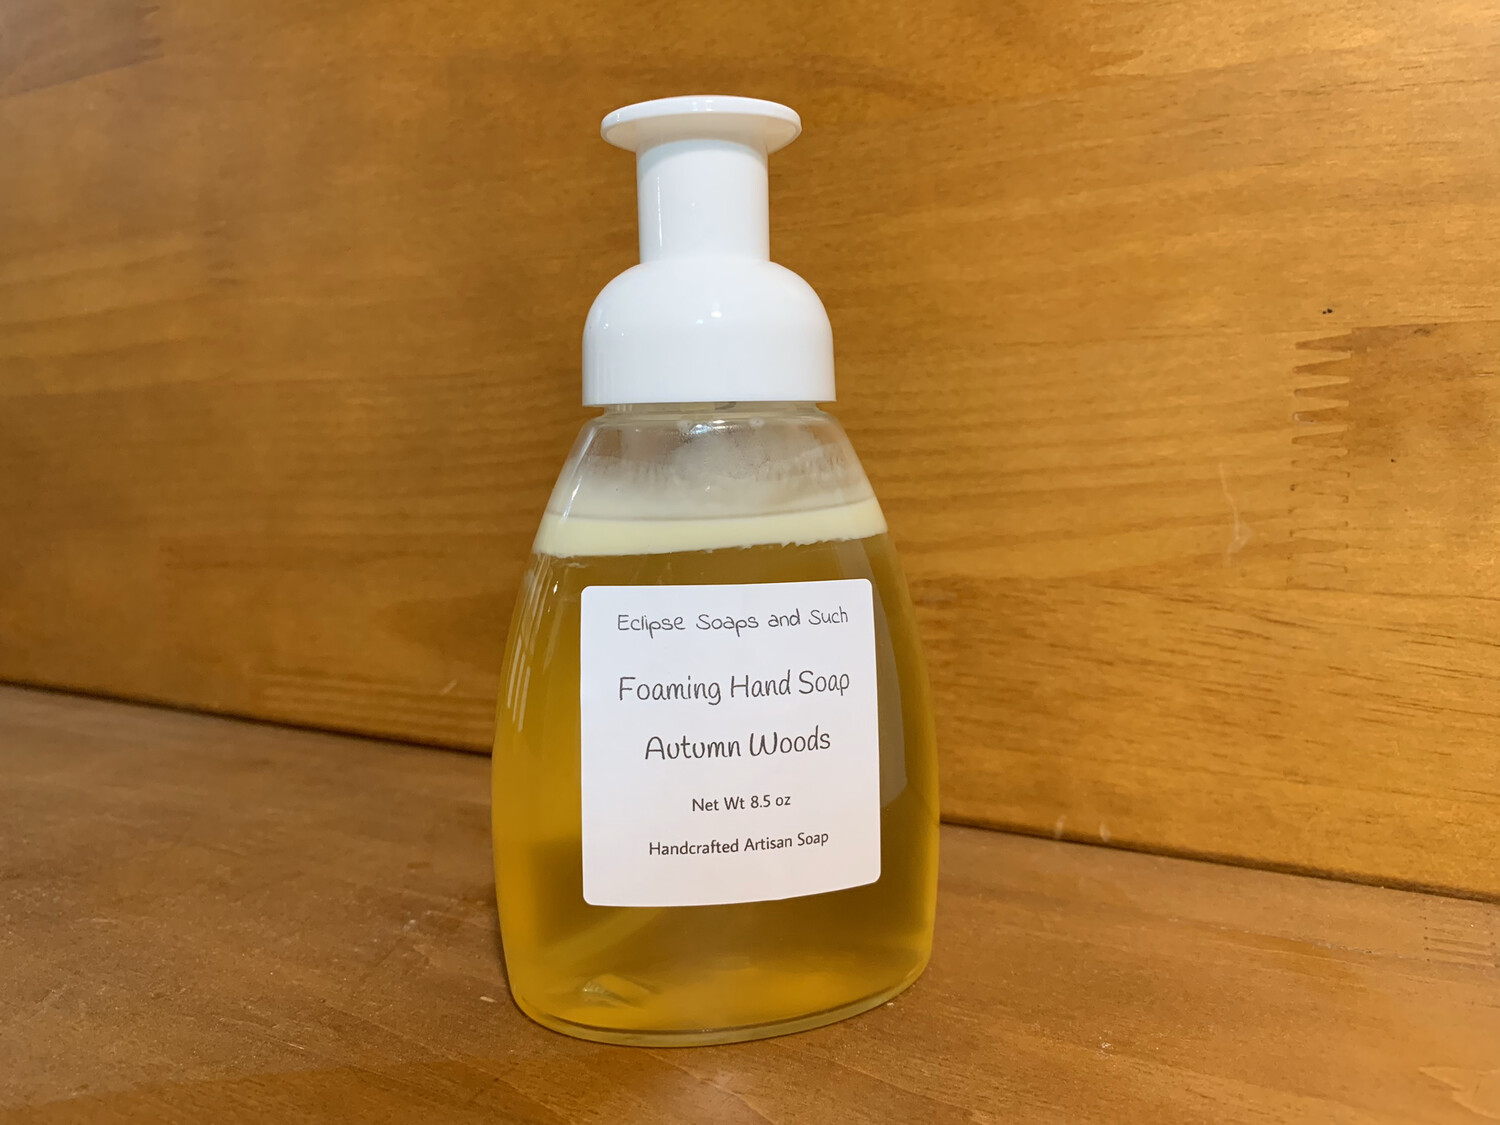 Foaming Hand Soap Autumn Woods